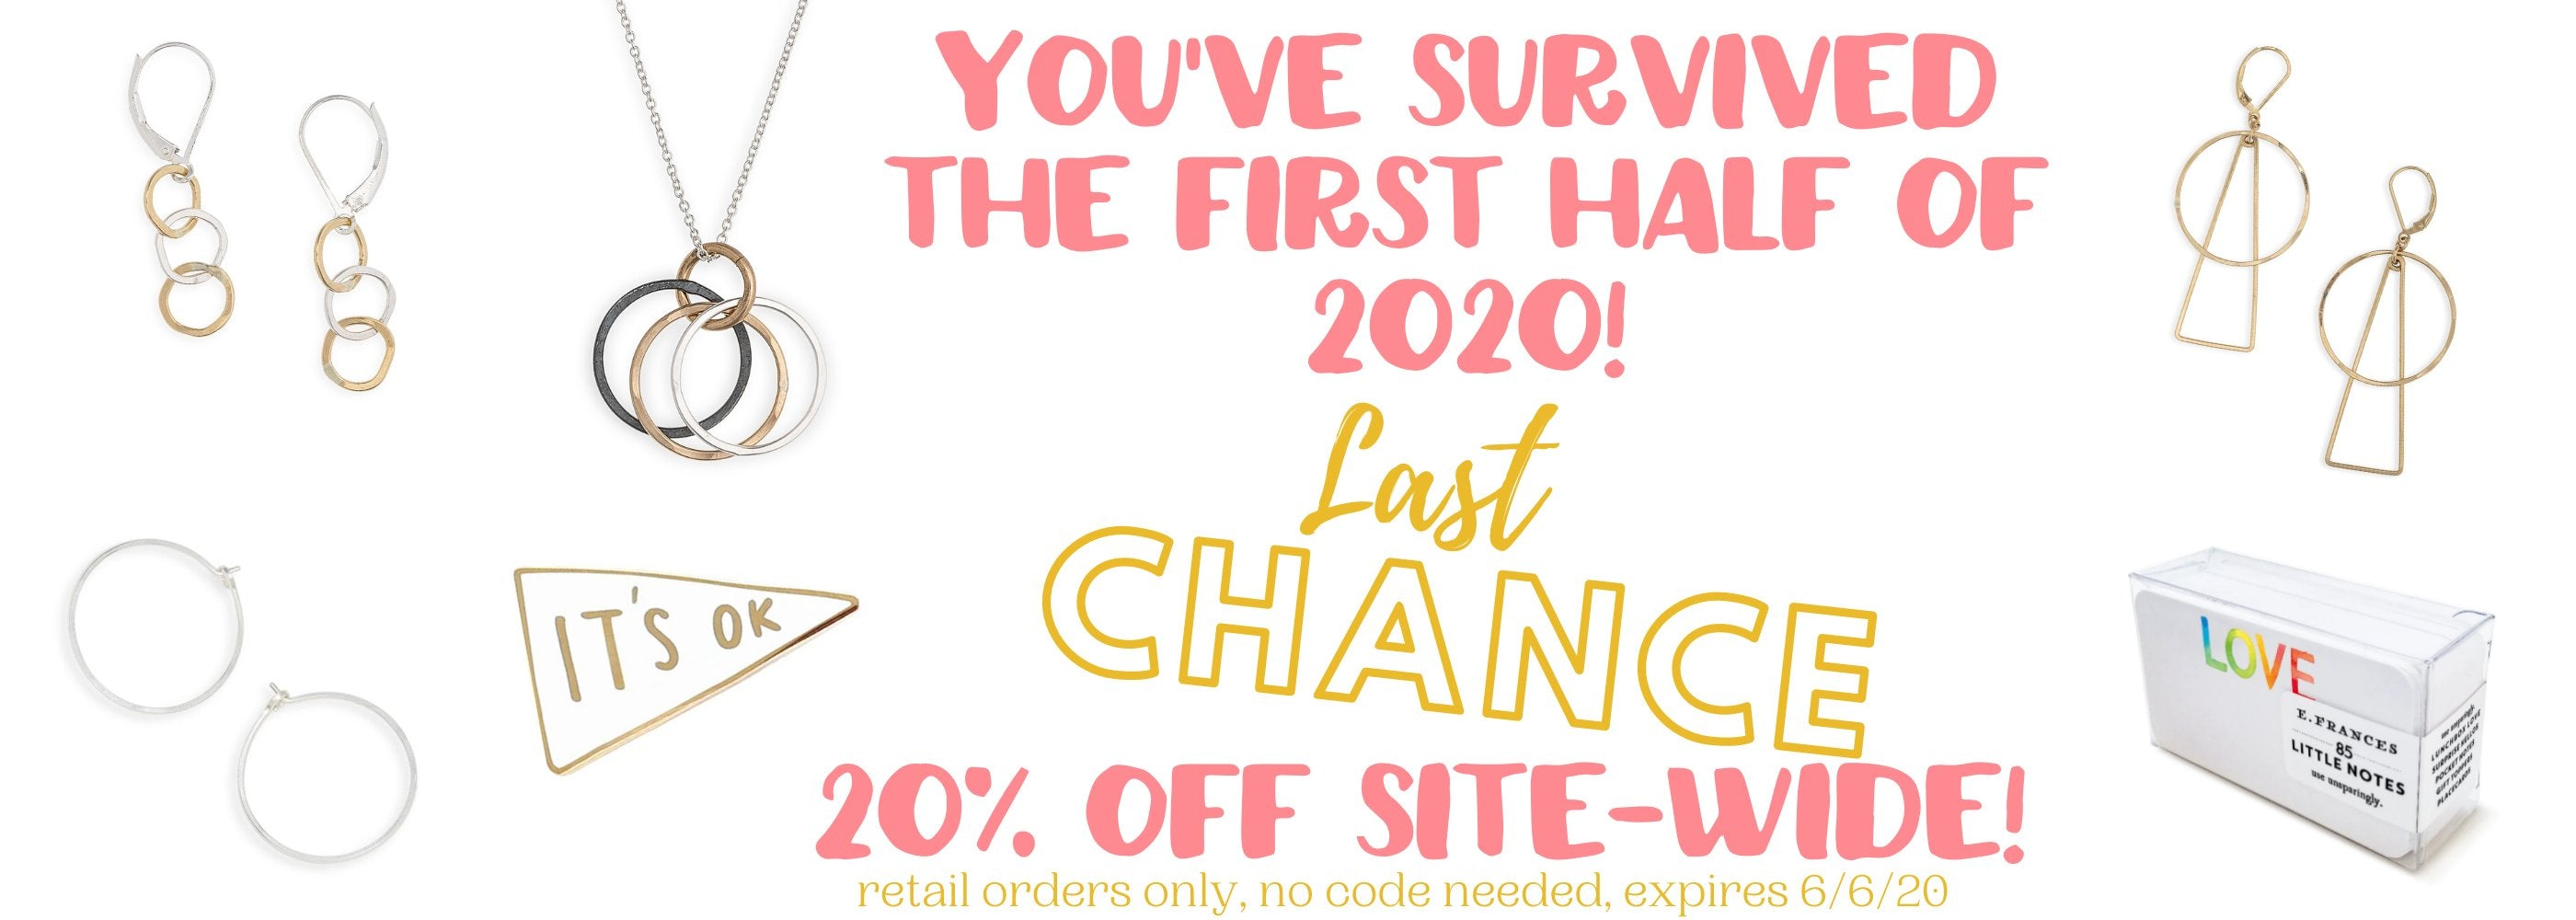 you've survived the first half of 2020!